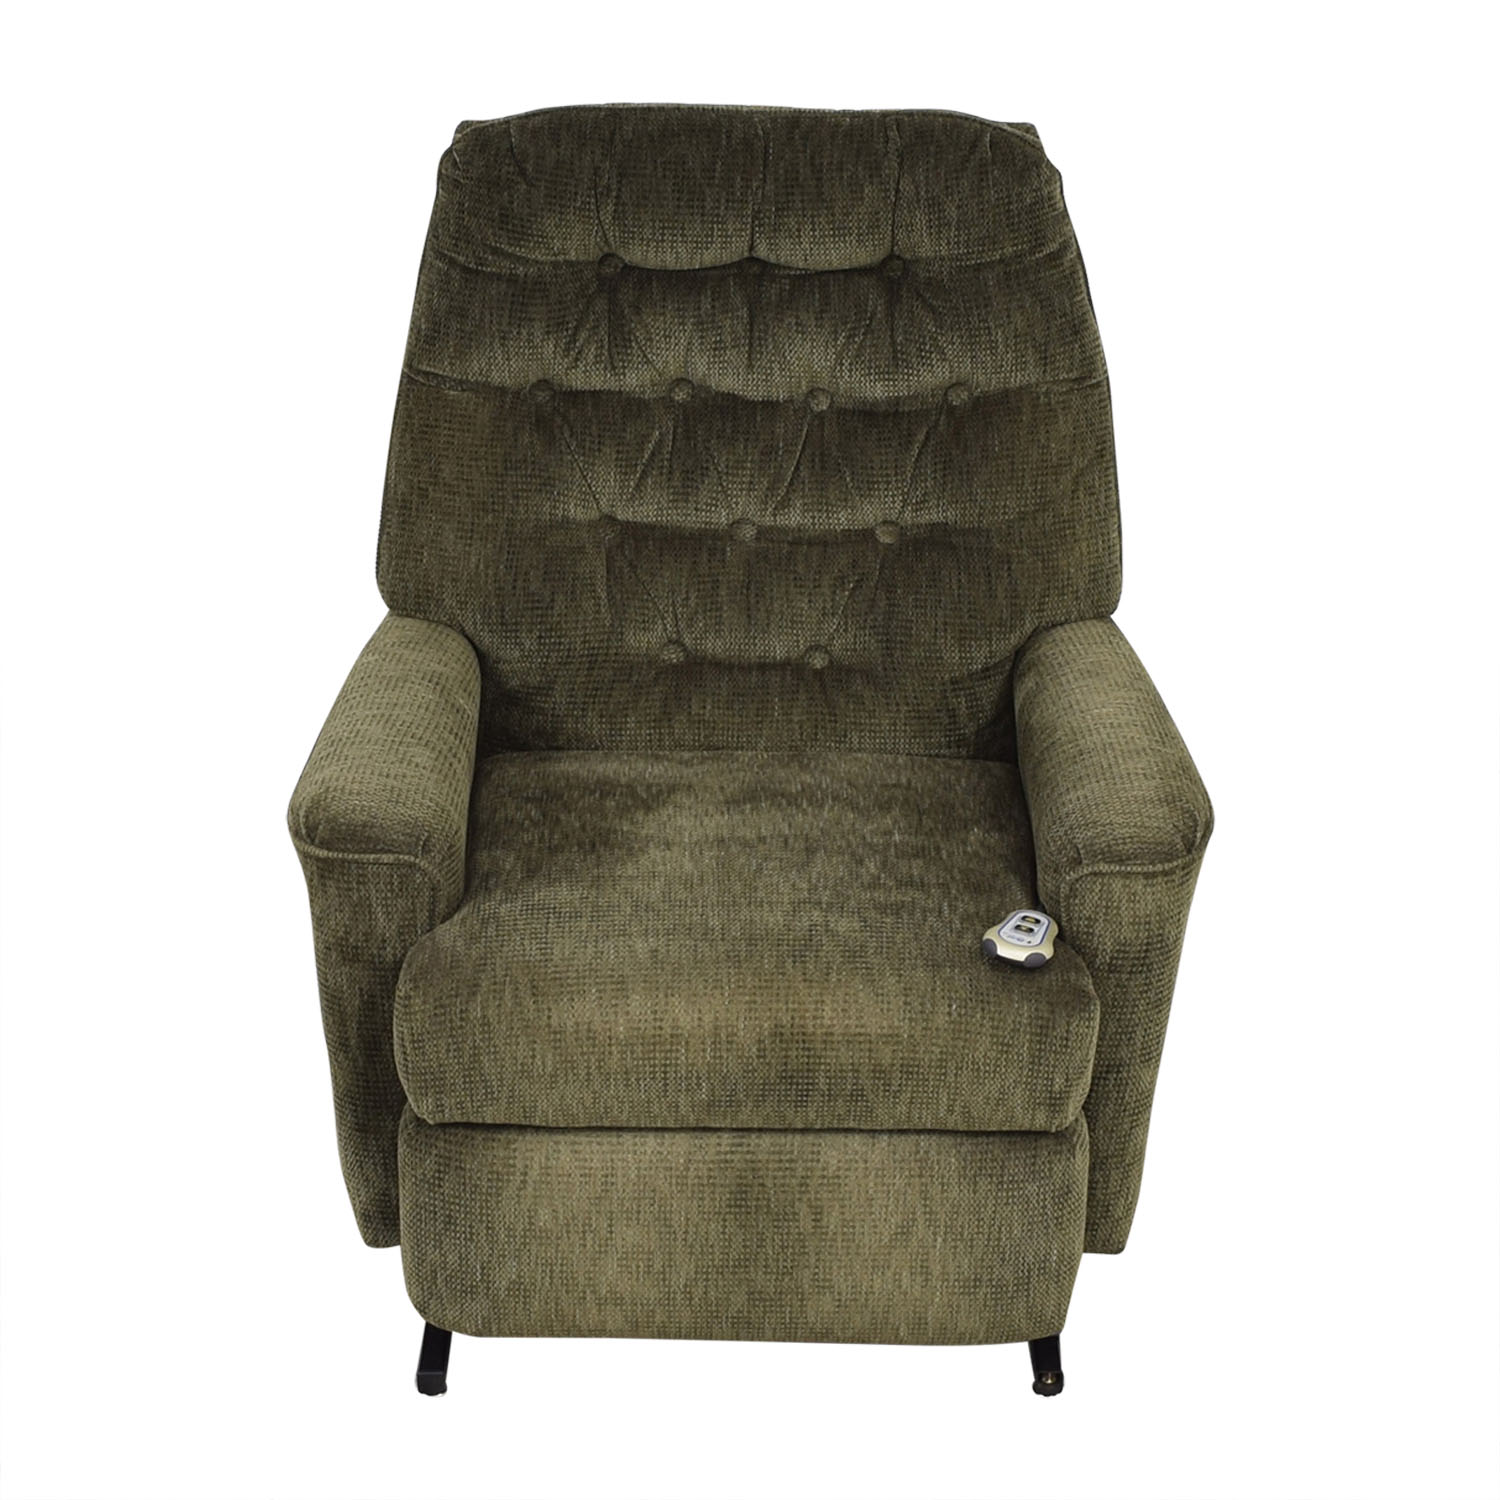 buy Best Chairs Best Chairs Power Lift Recliner online